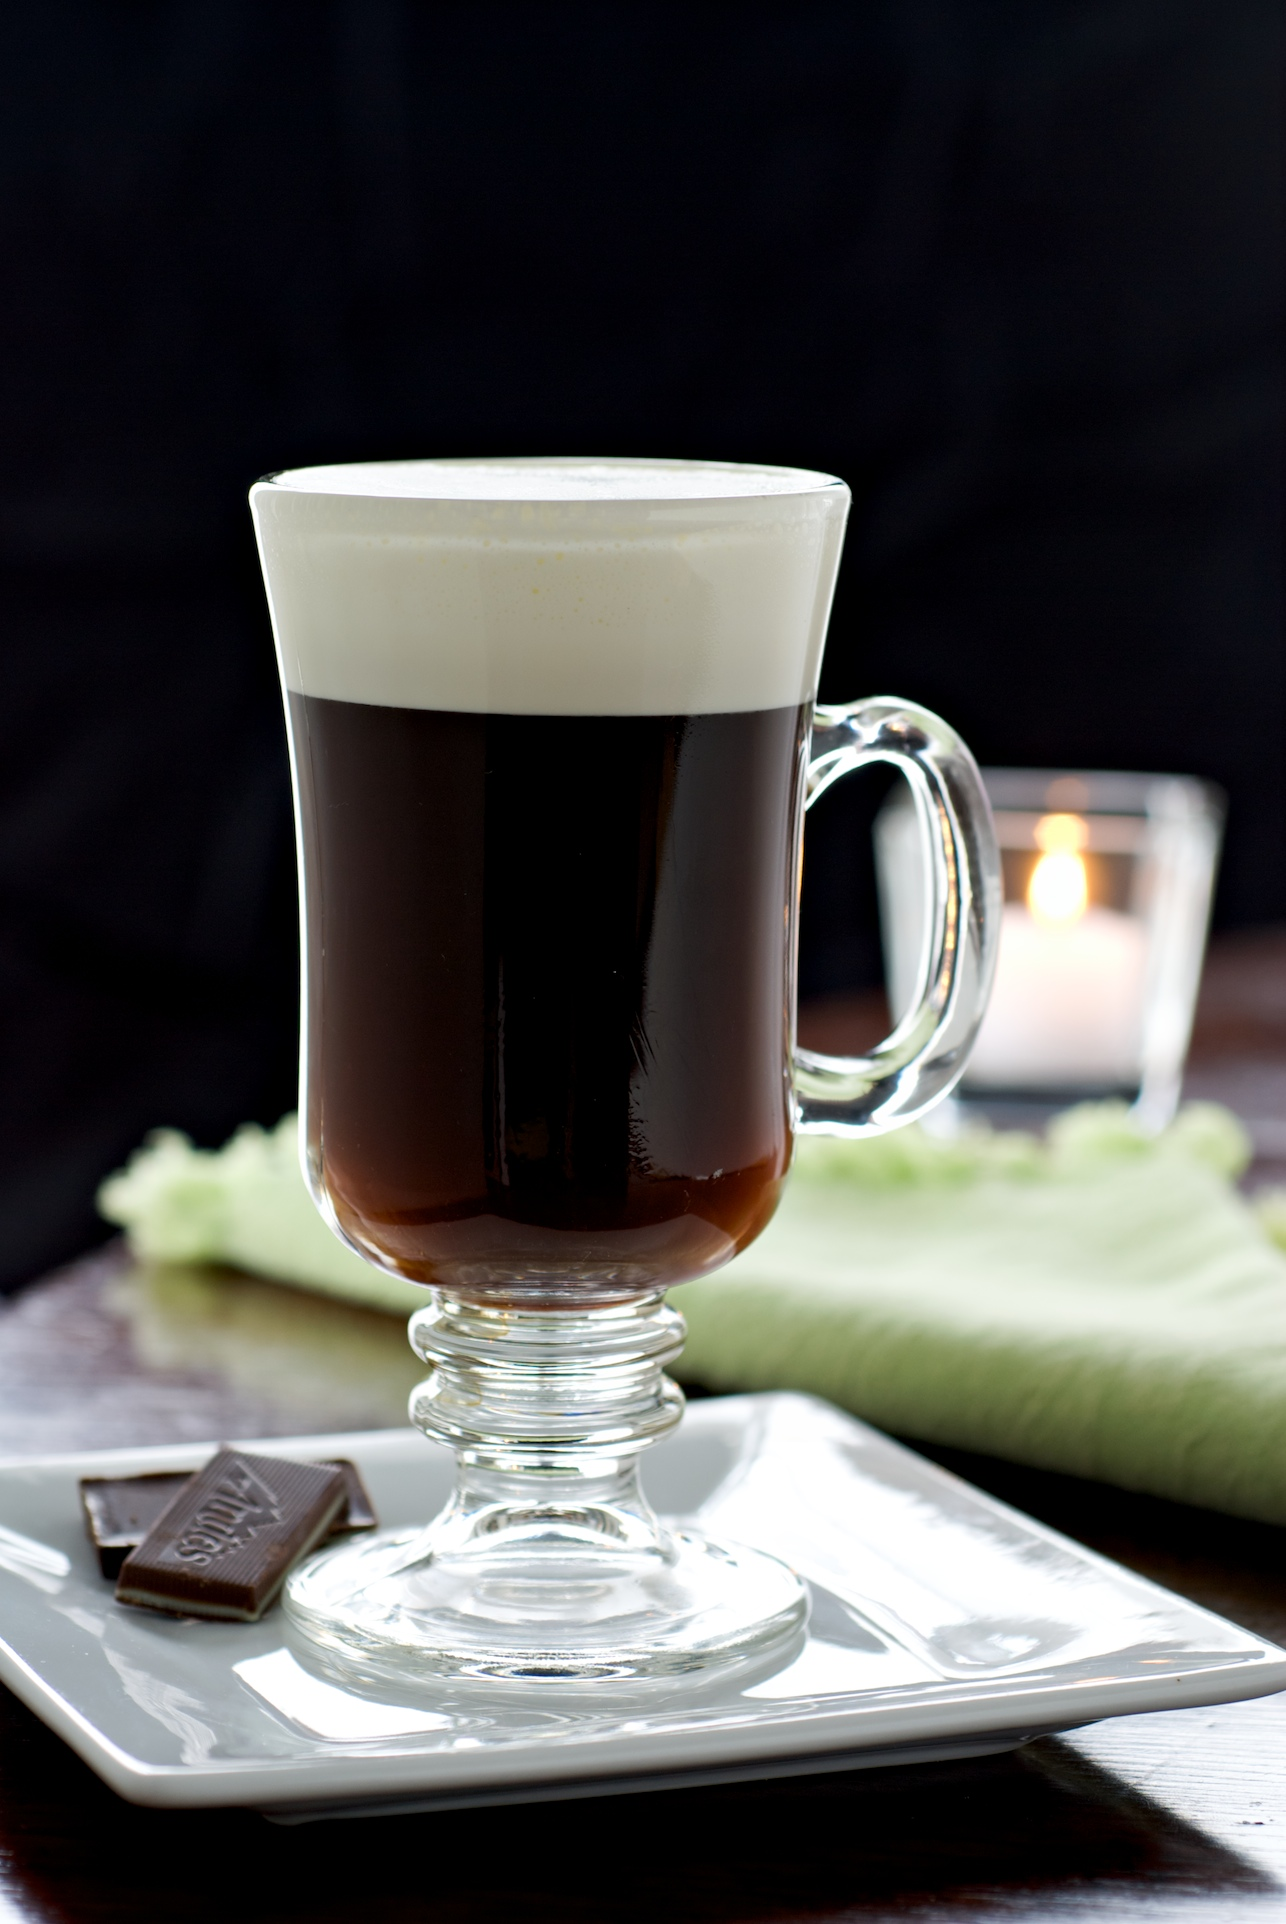 You can't beat the classics, but you can join them. This Classic Irish Coffee is based on the traditional Irish coffee recipe.